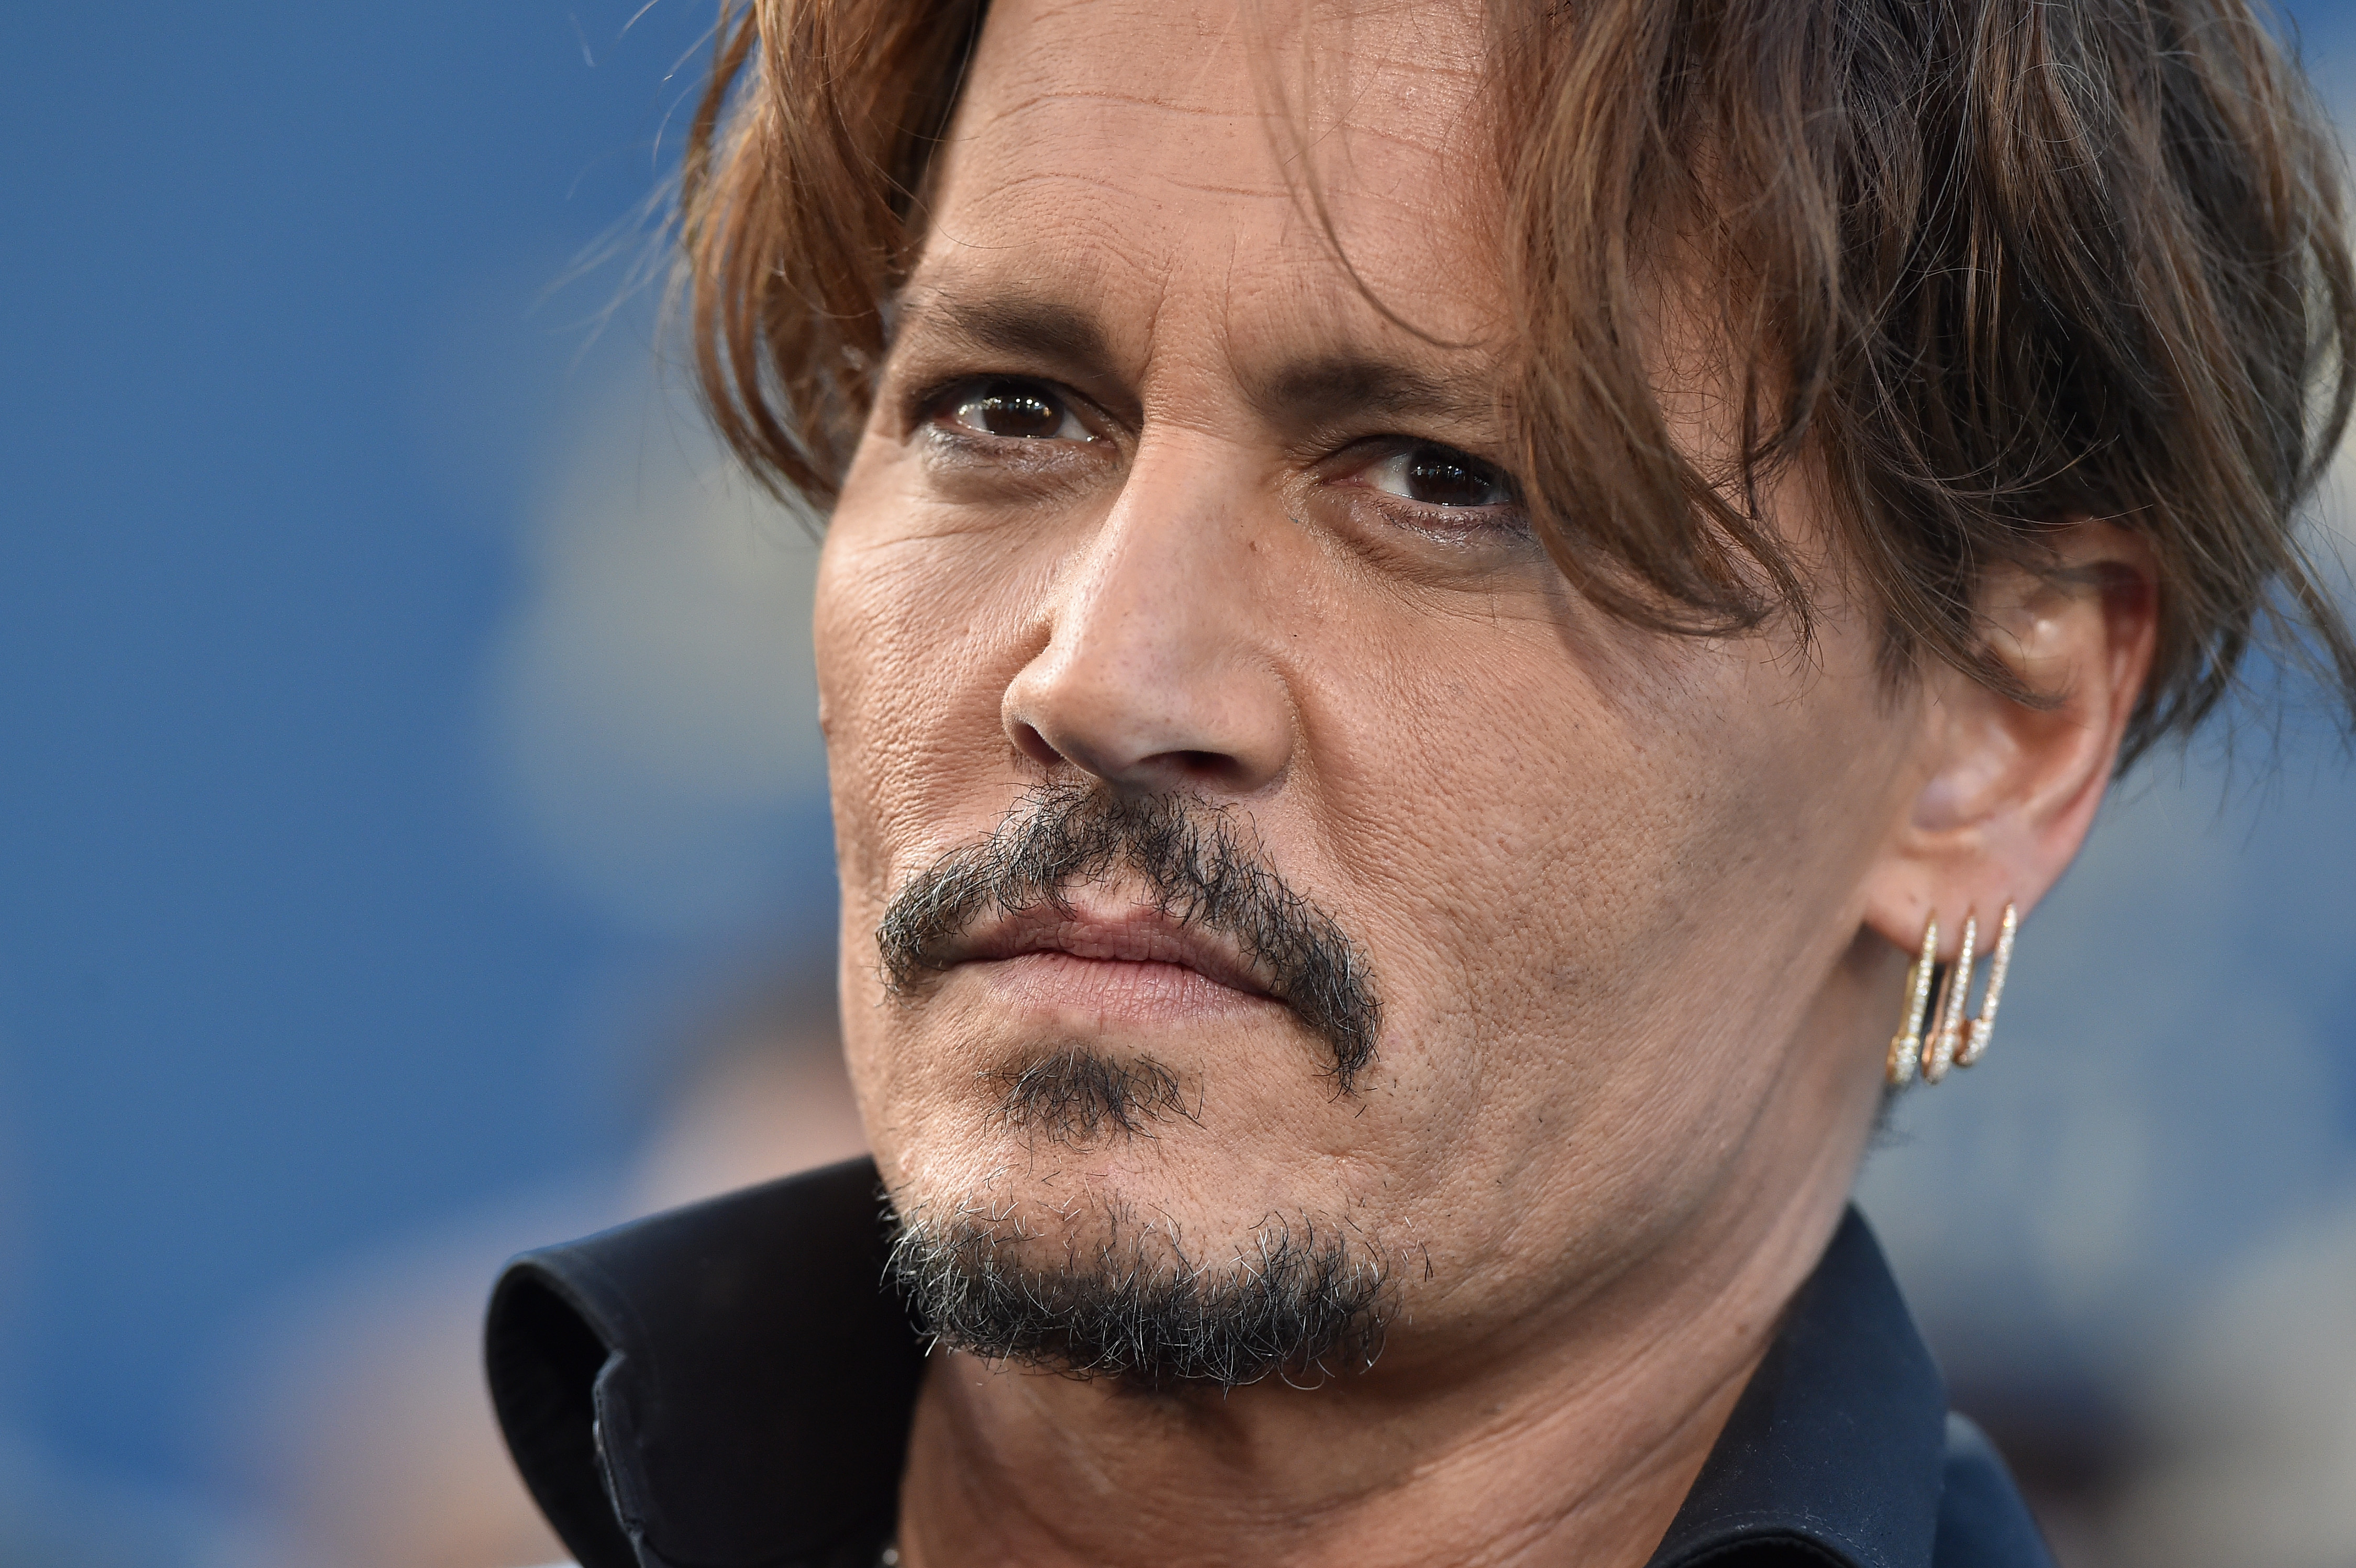 Actor Johnny Depp arrives at the premiere of Disney's 'Pirates of the Caribbean: Dead Men Tell No Tales' at Dolby Theatre on May 18, 2017 in Hollywood, California.